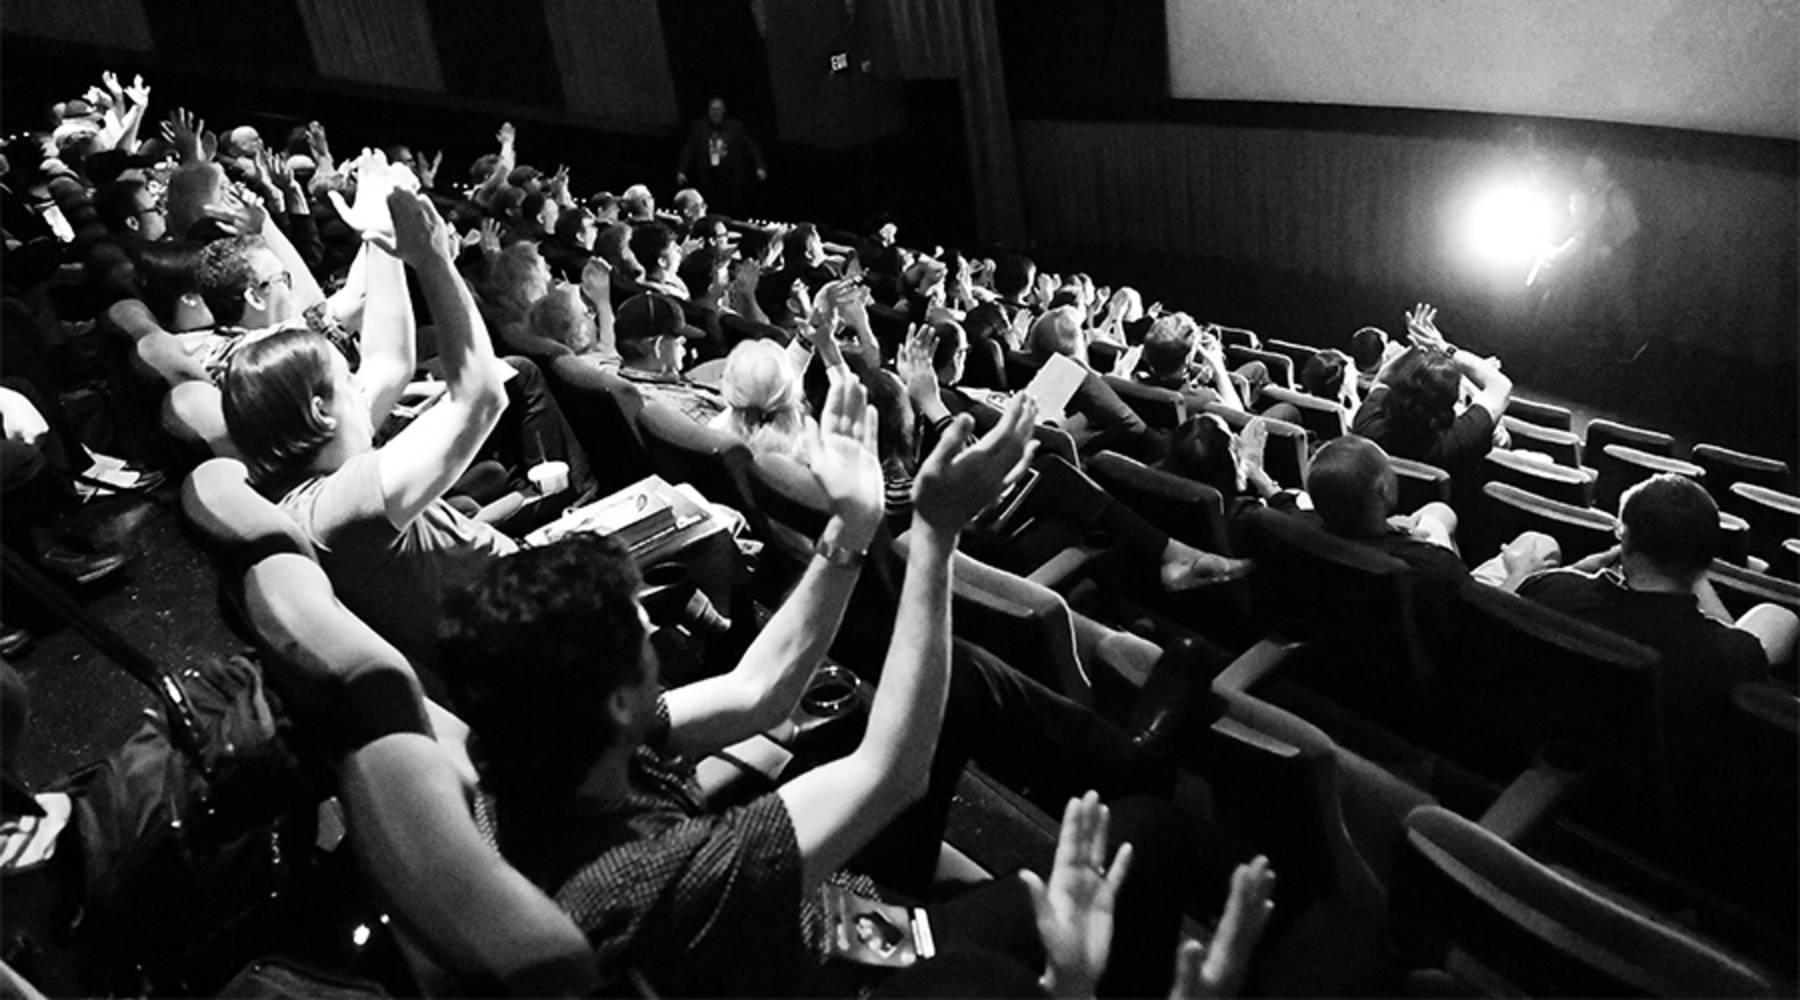 In the golden age of streaming, does film history have a place? - Marketplace